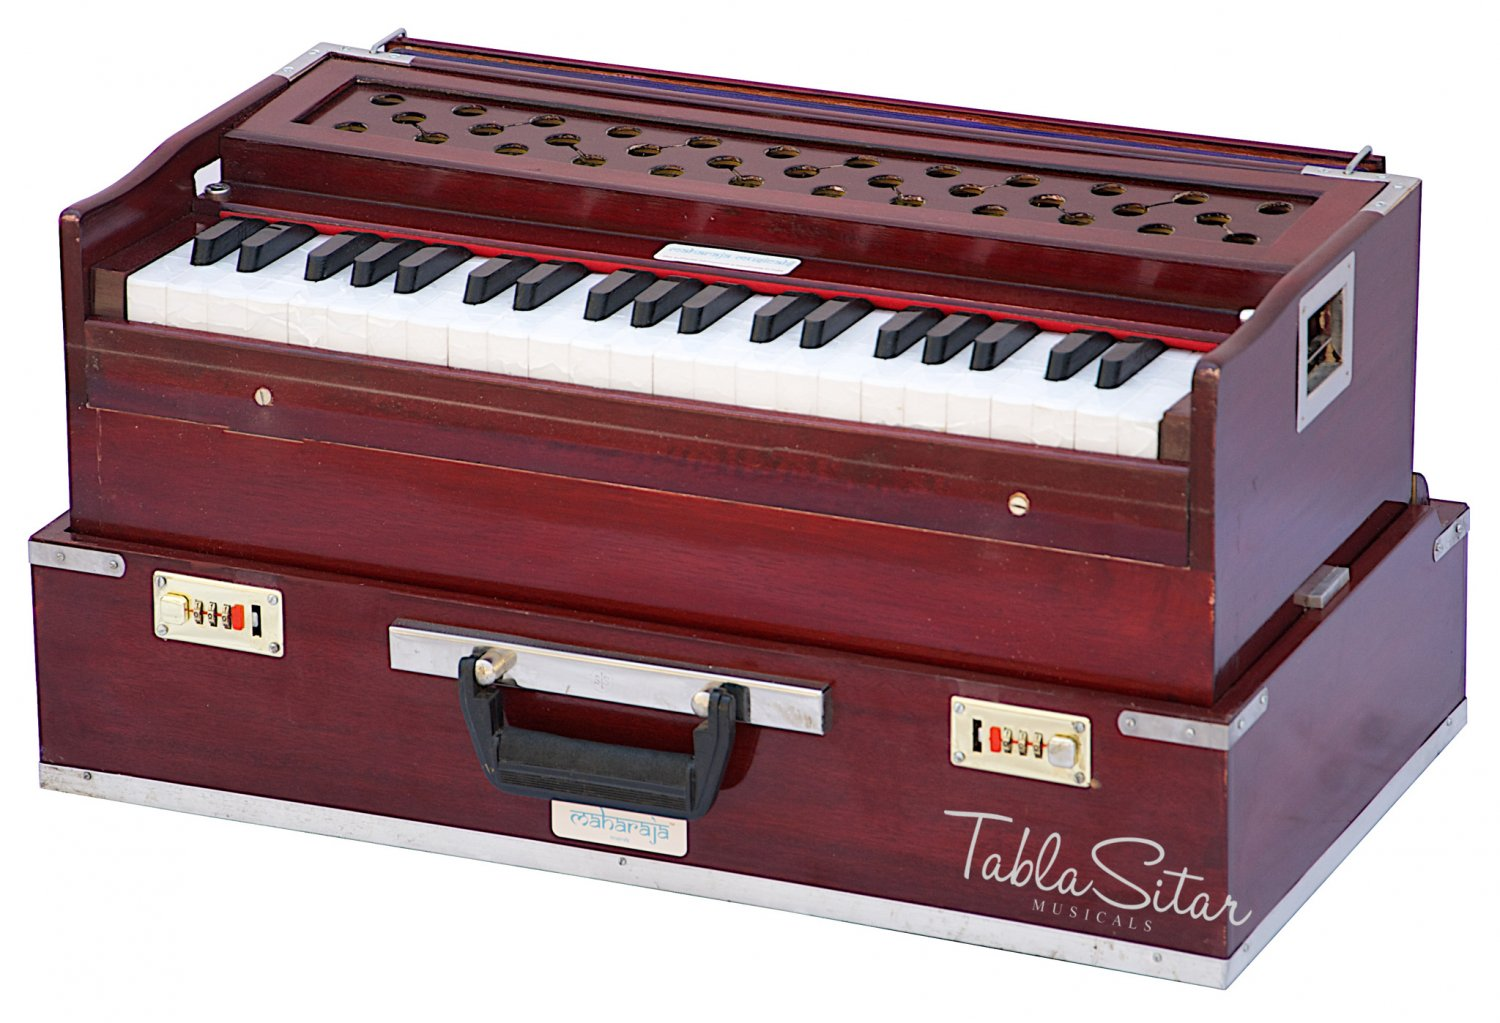 HARMONIUM No.6000r/FOLDING/MAHARAJA�/A440/SAFRI/ROSEWOOD COLOR/COUPLER/BAG/BFB-1